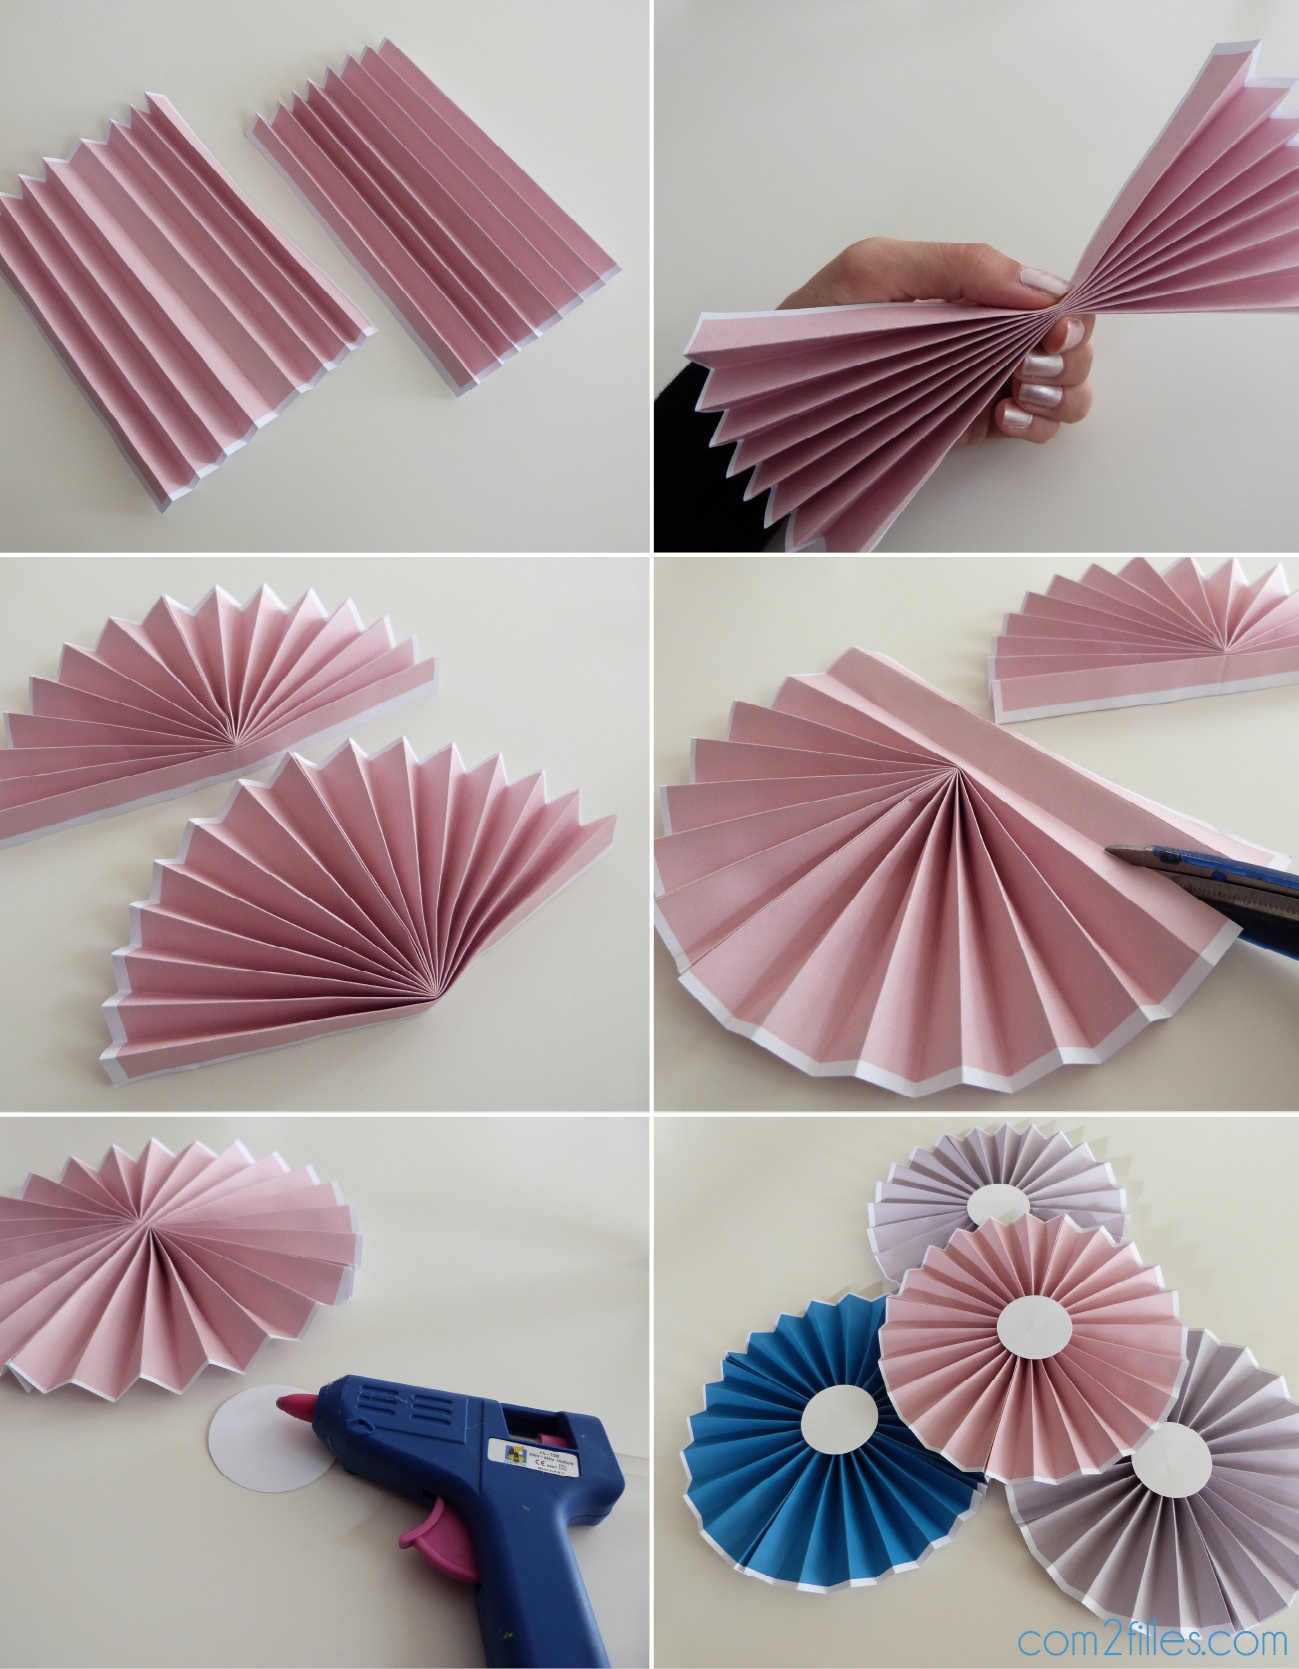 Diy le tuto des rosaces en papier niveau facile for Decoration avec du papier